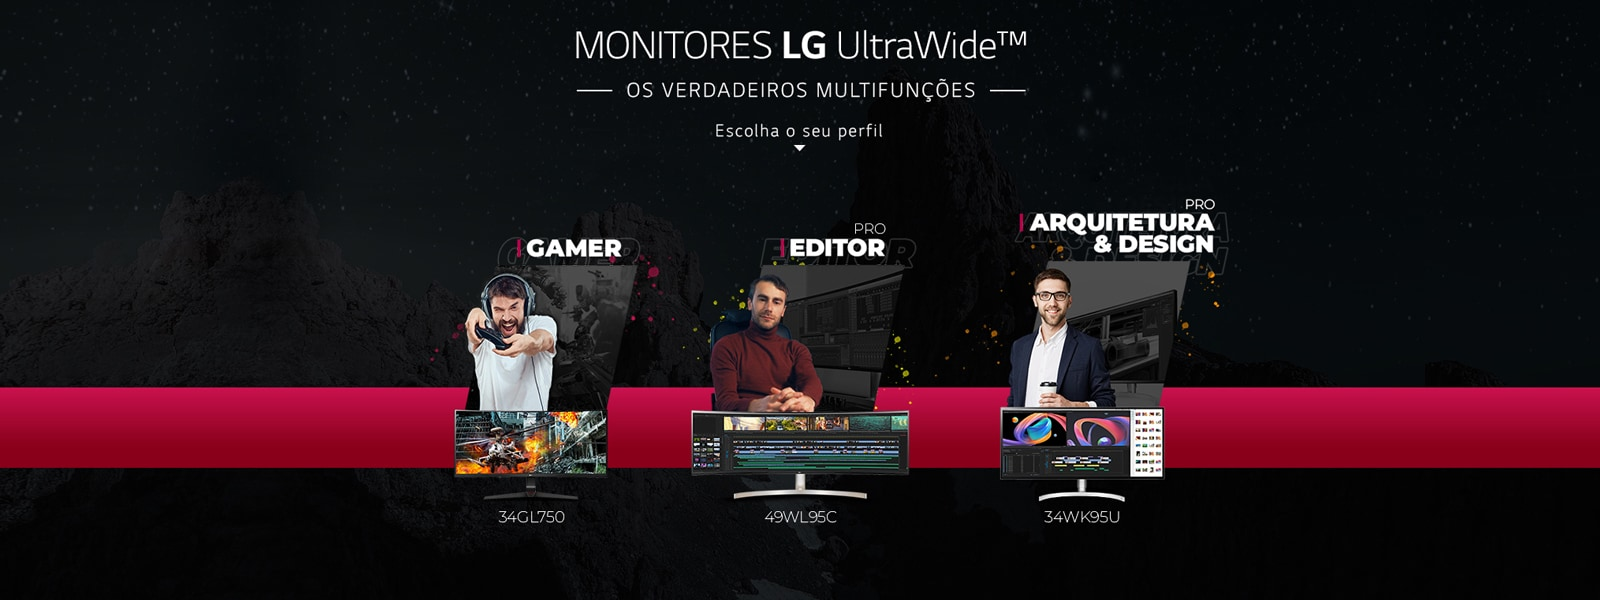 monitores_ultrawide_1600x800